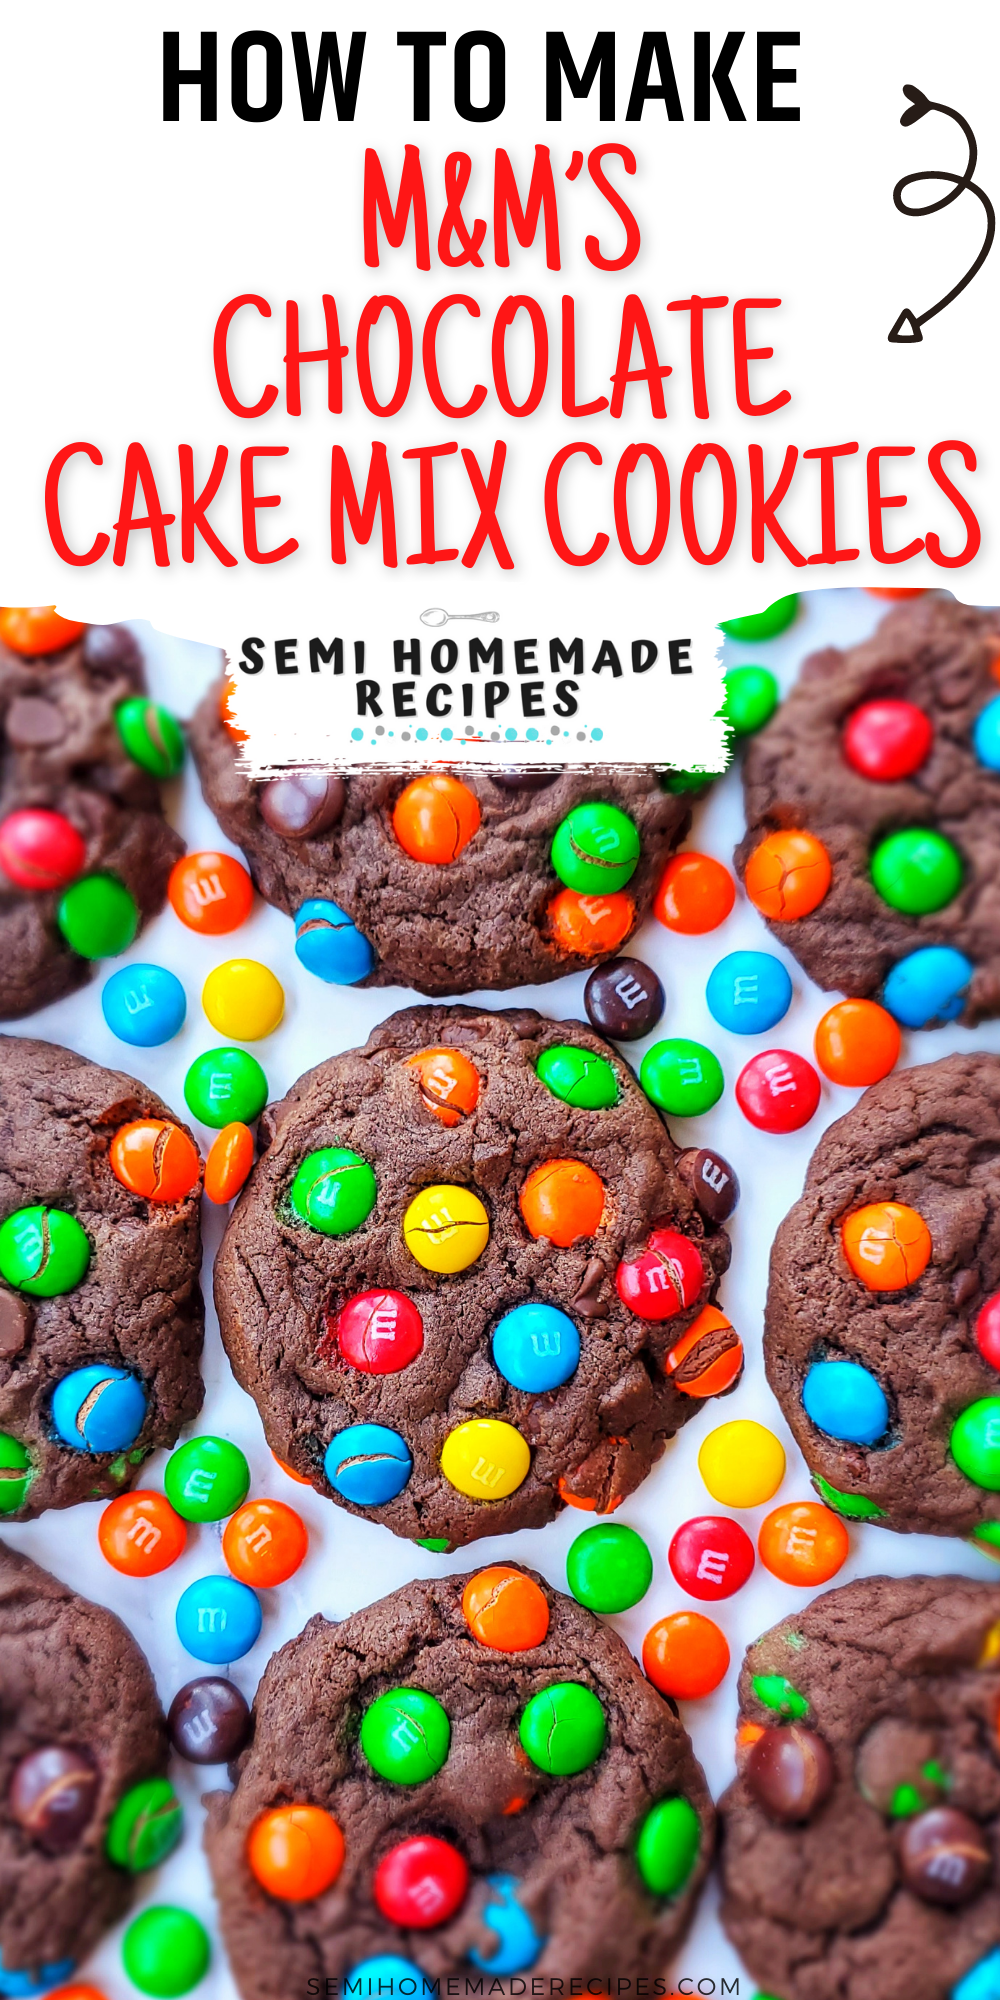 These easy M&M's Chocolate Cake Mix Cookies are made using chocolate cake mix, oil, eggs and colorful chocolate M&M candies!